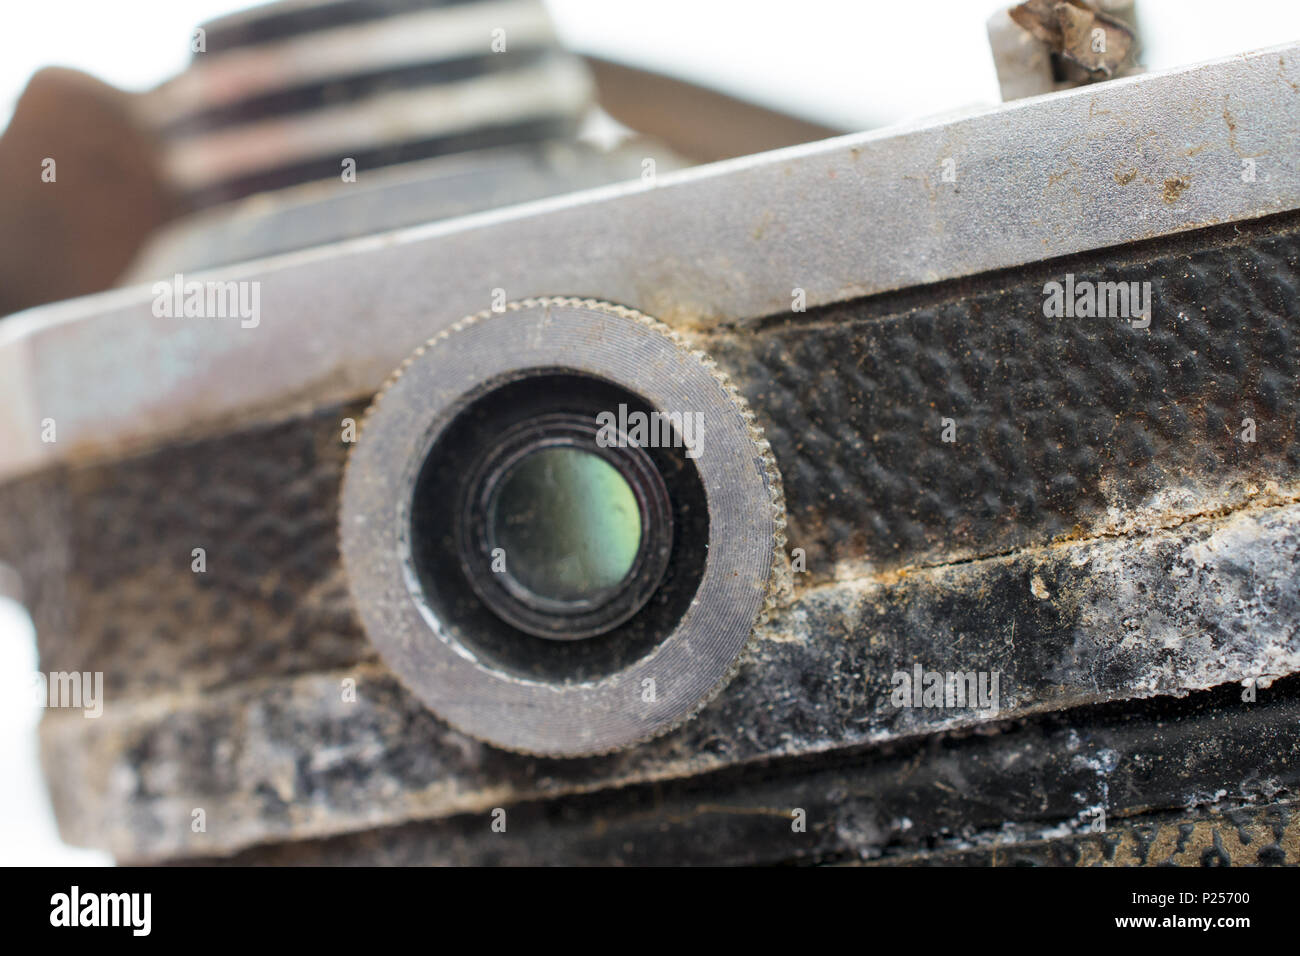 image of a vintage rusty and dusty film camera - Stock Image